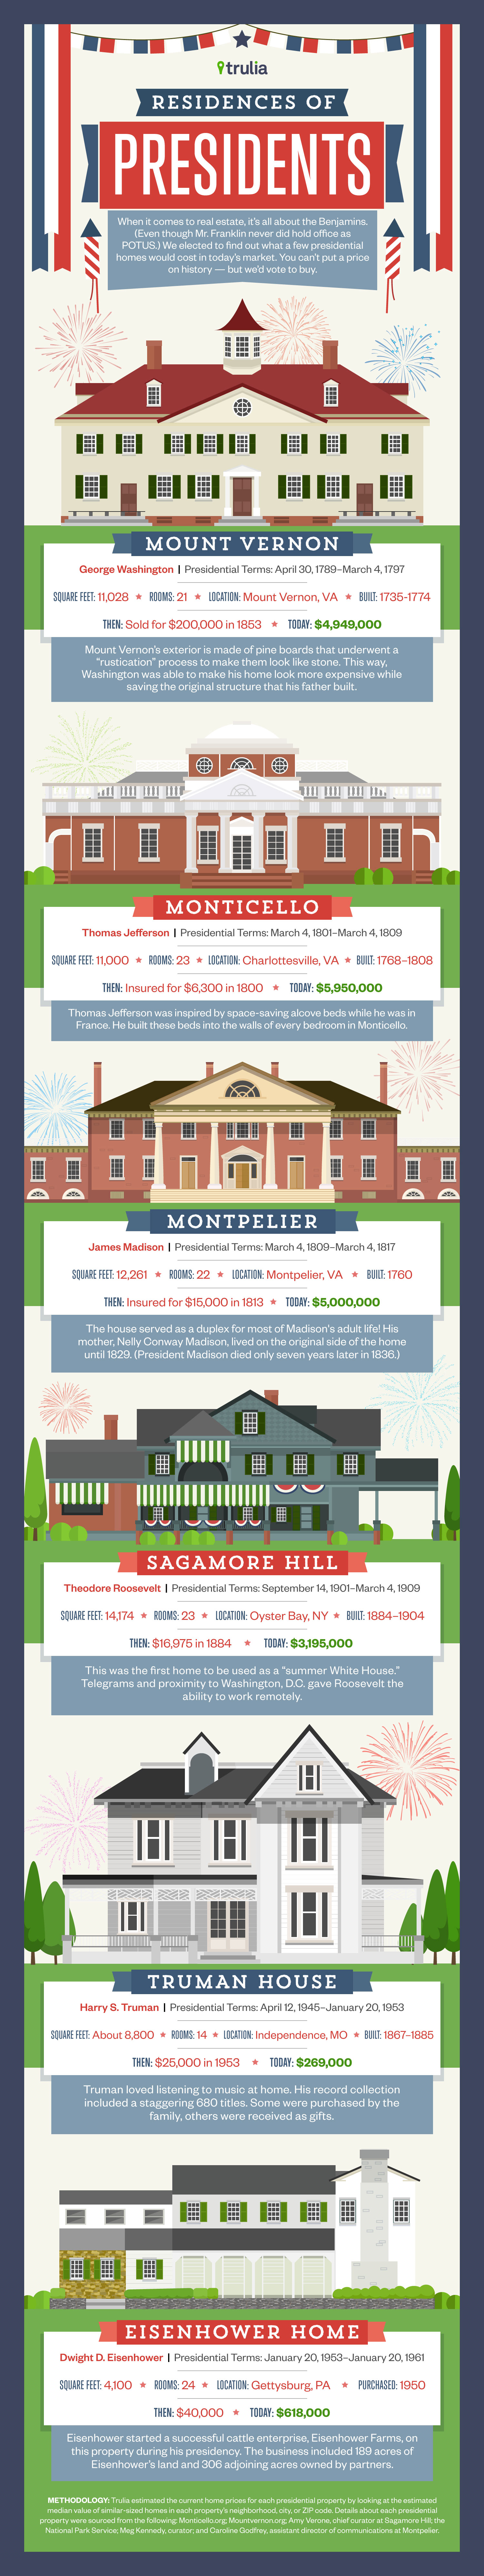 how much would presidential homes cost today